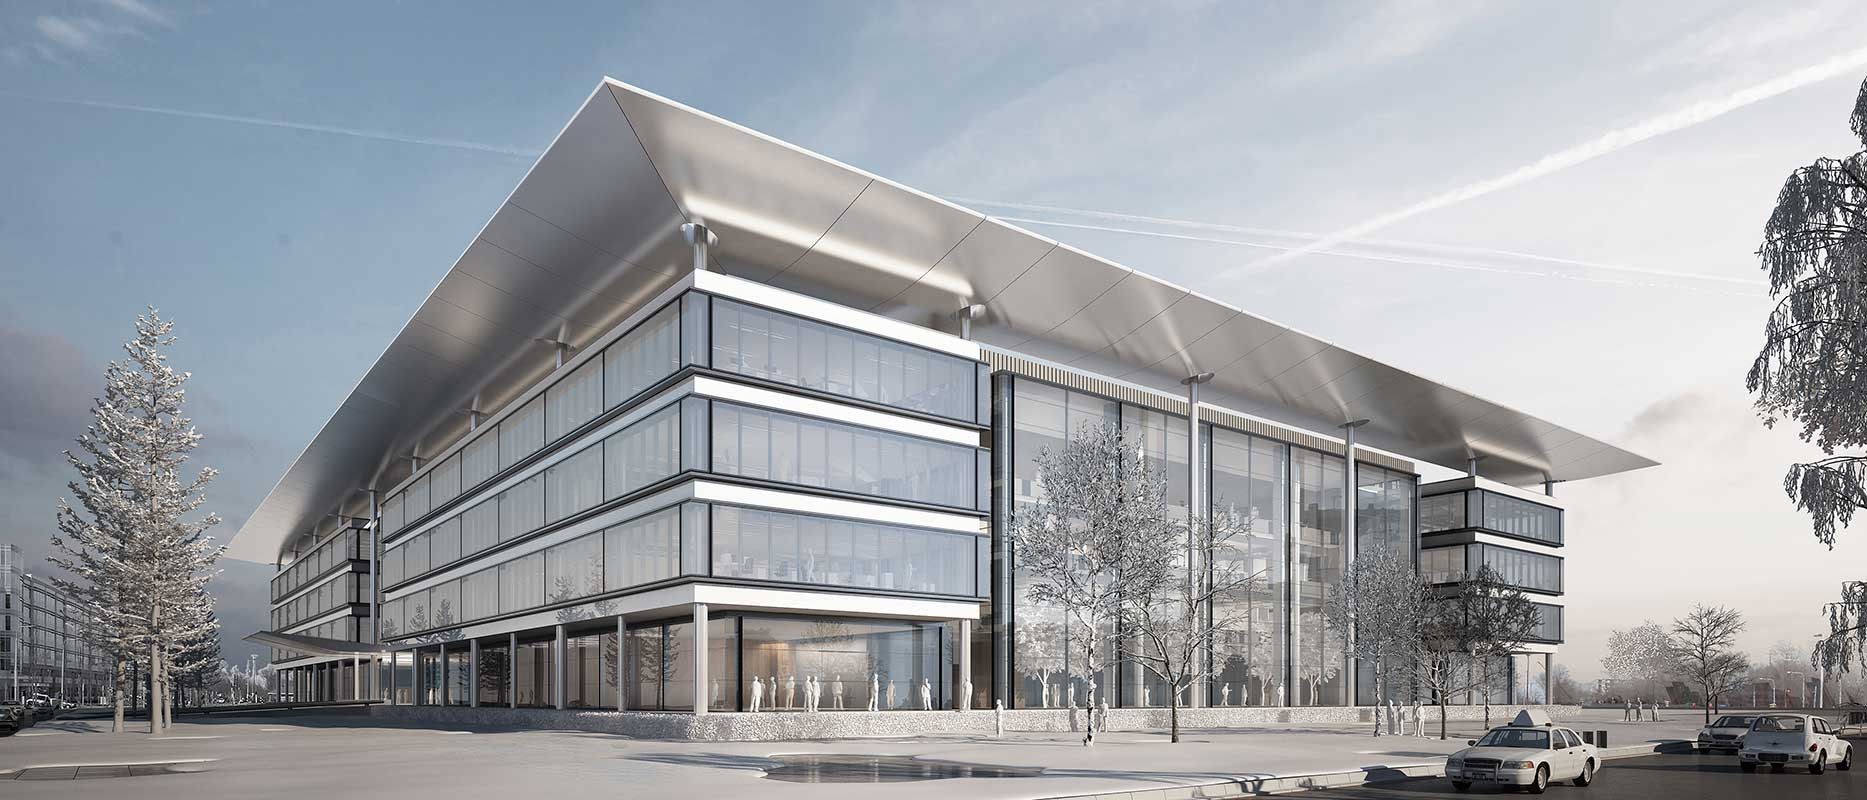 rendering of CWRU Cleveland Clinic Health Education Campus